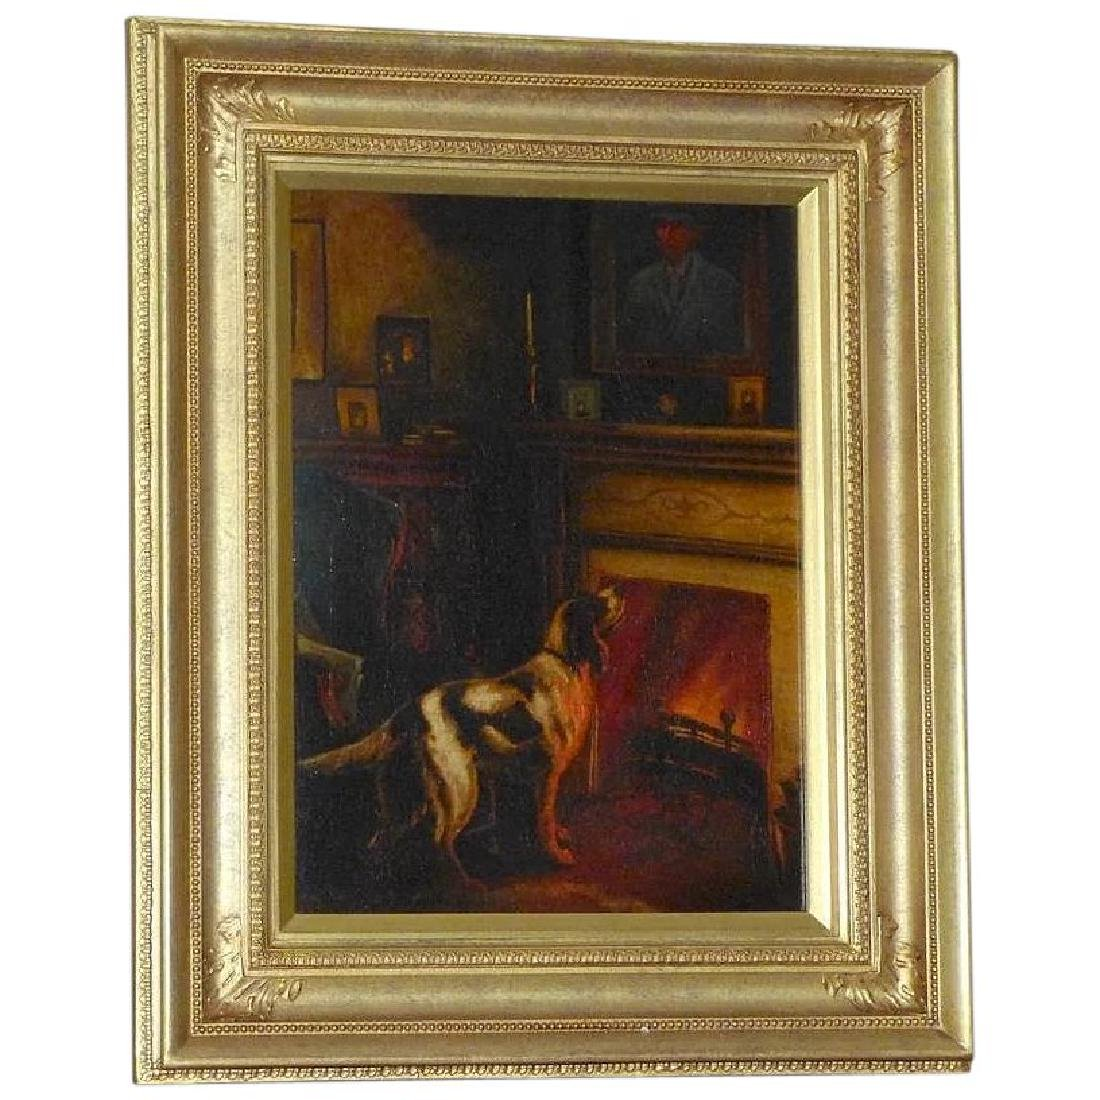 Antique Victorian Oil Painting of a Dog beside a